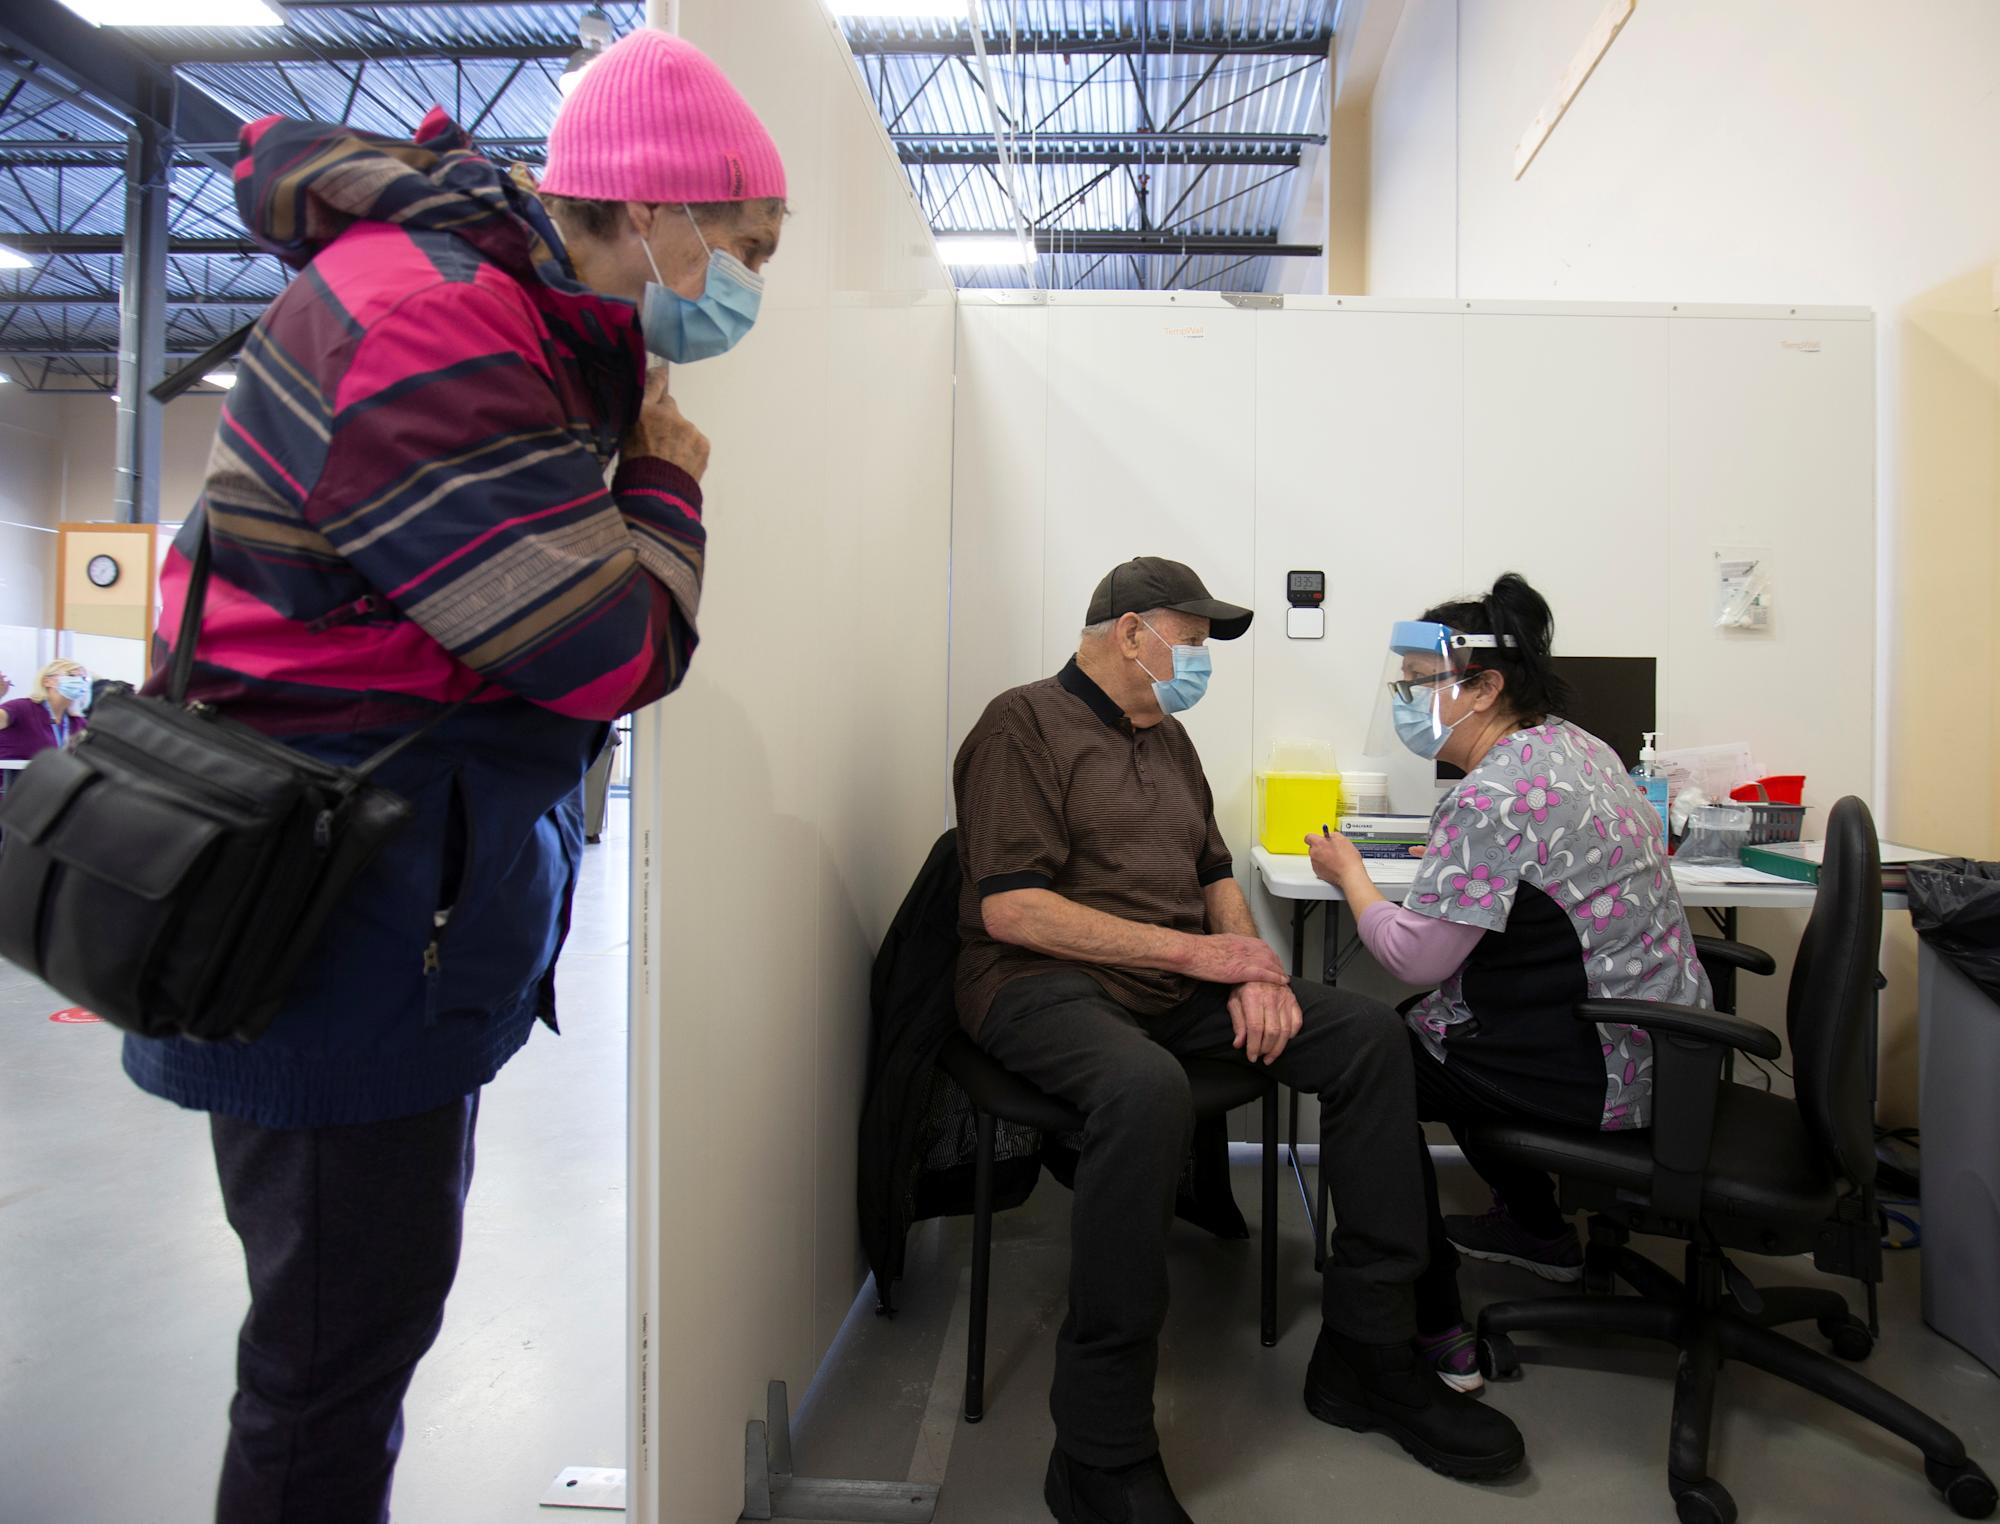 Nine in ten Canadians want COVID-19 vaccine: poll - Yahoo Movies Canada